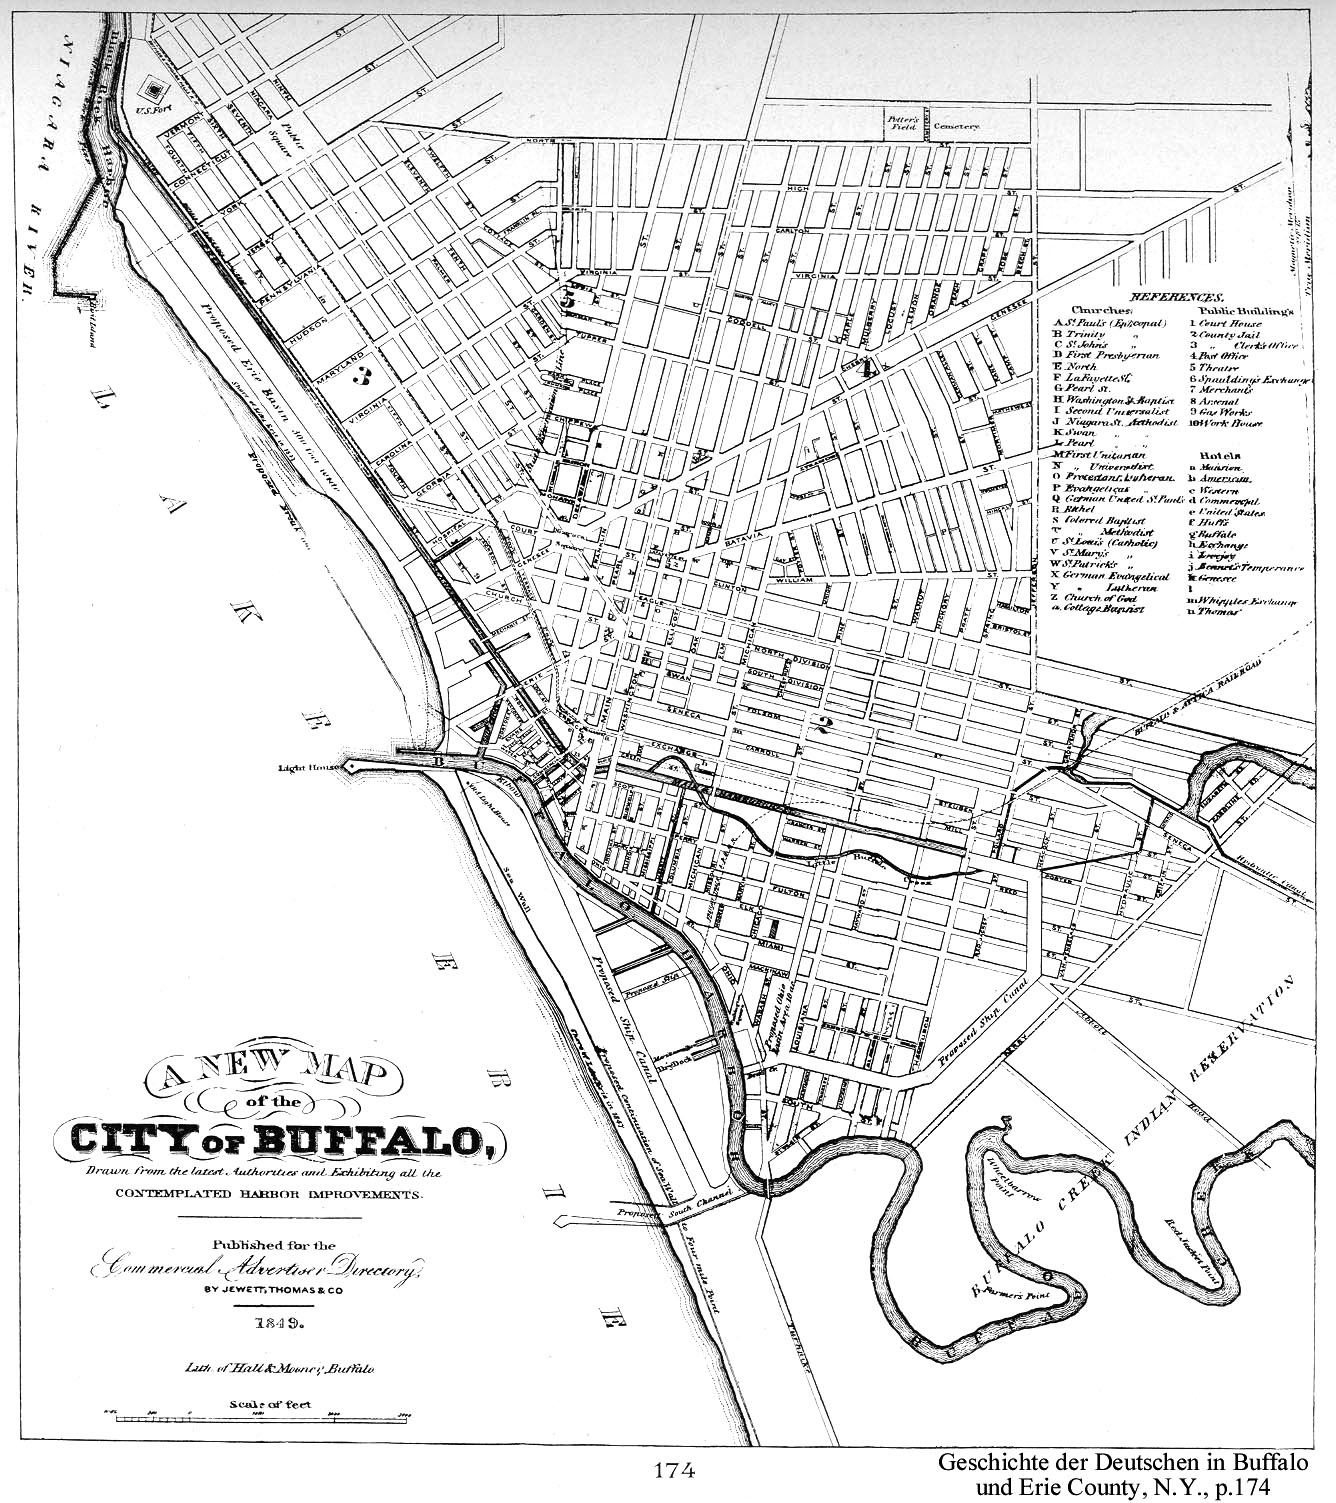 Black and white map of City of Buffalo